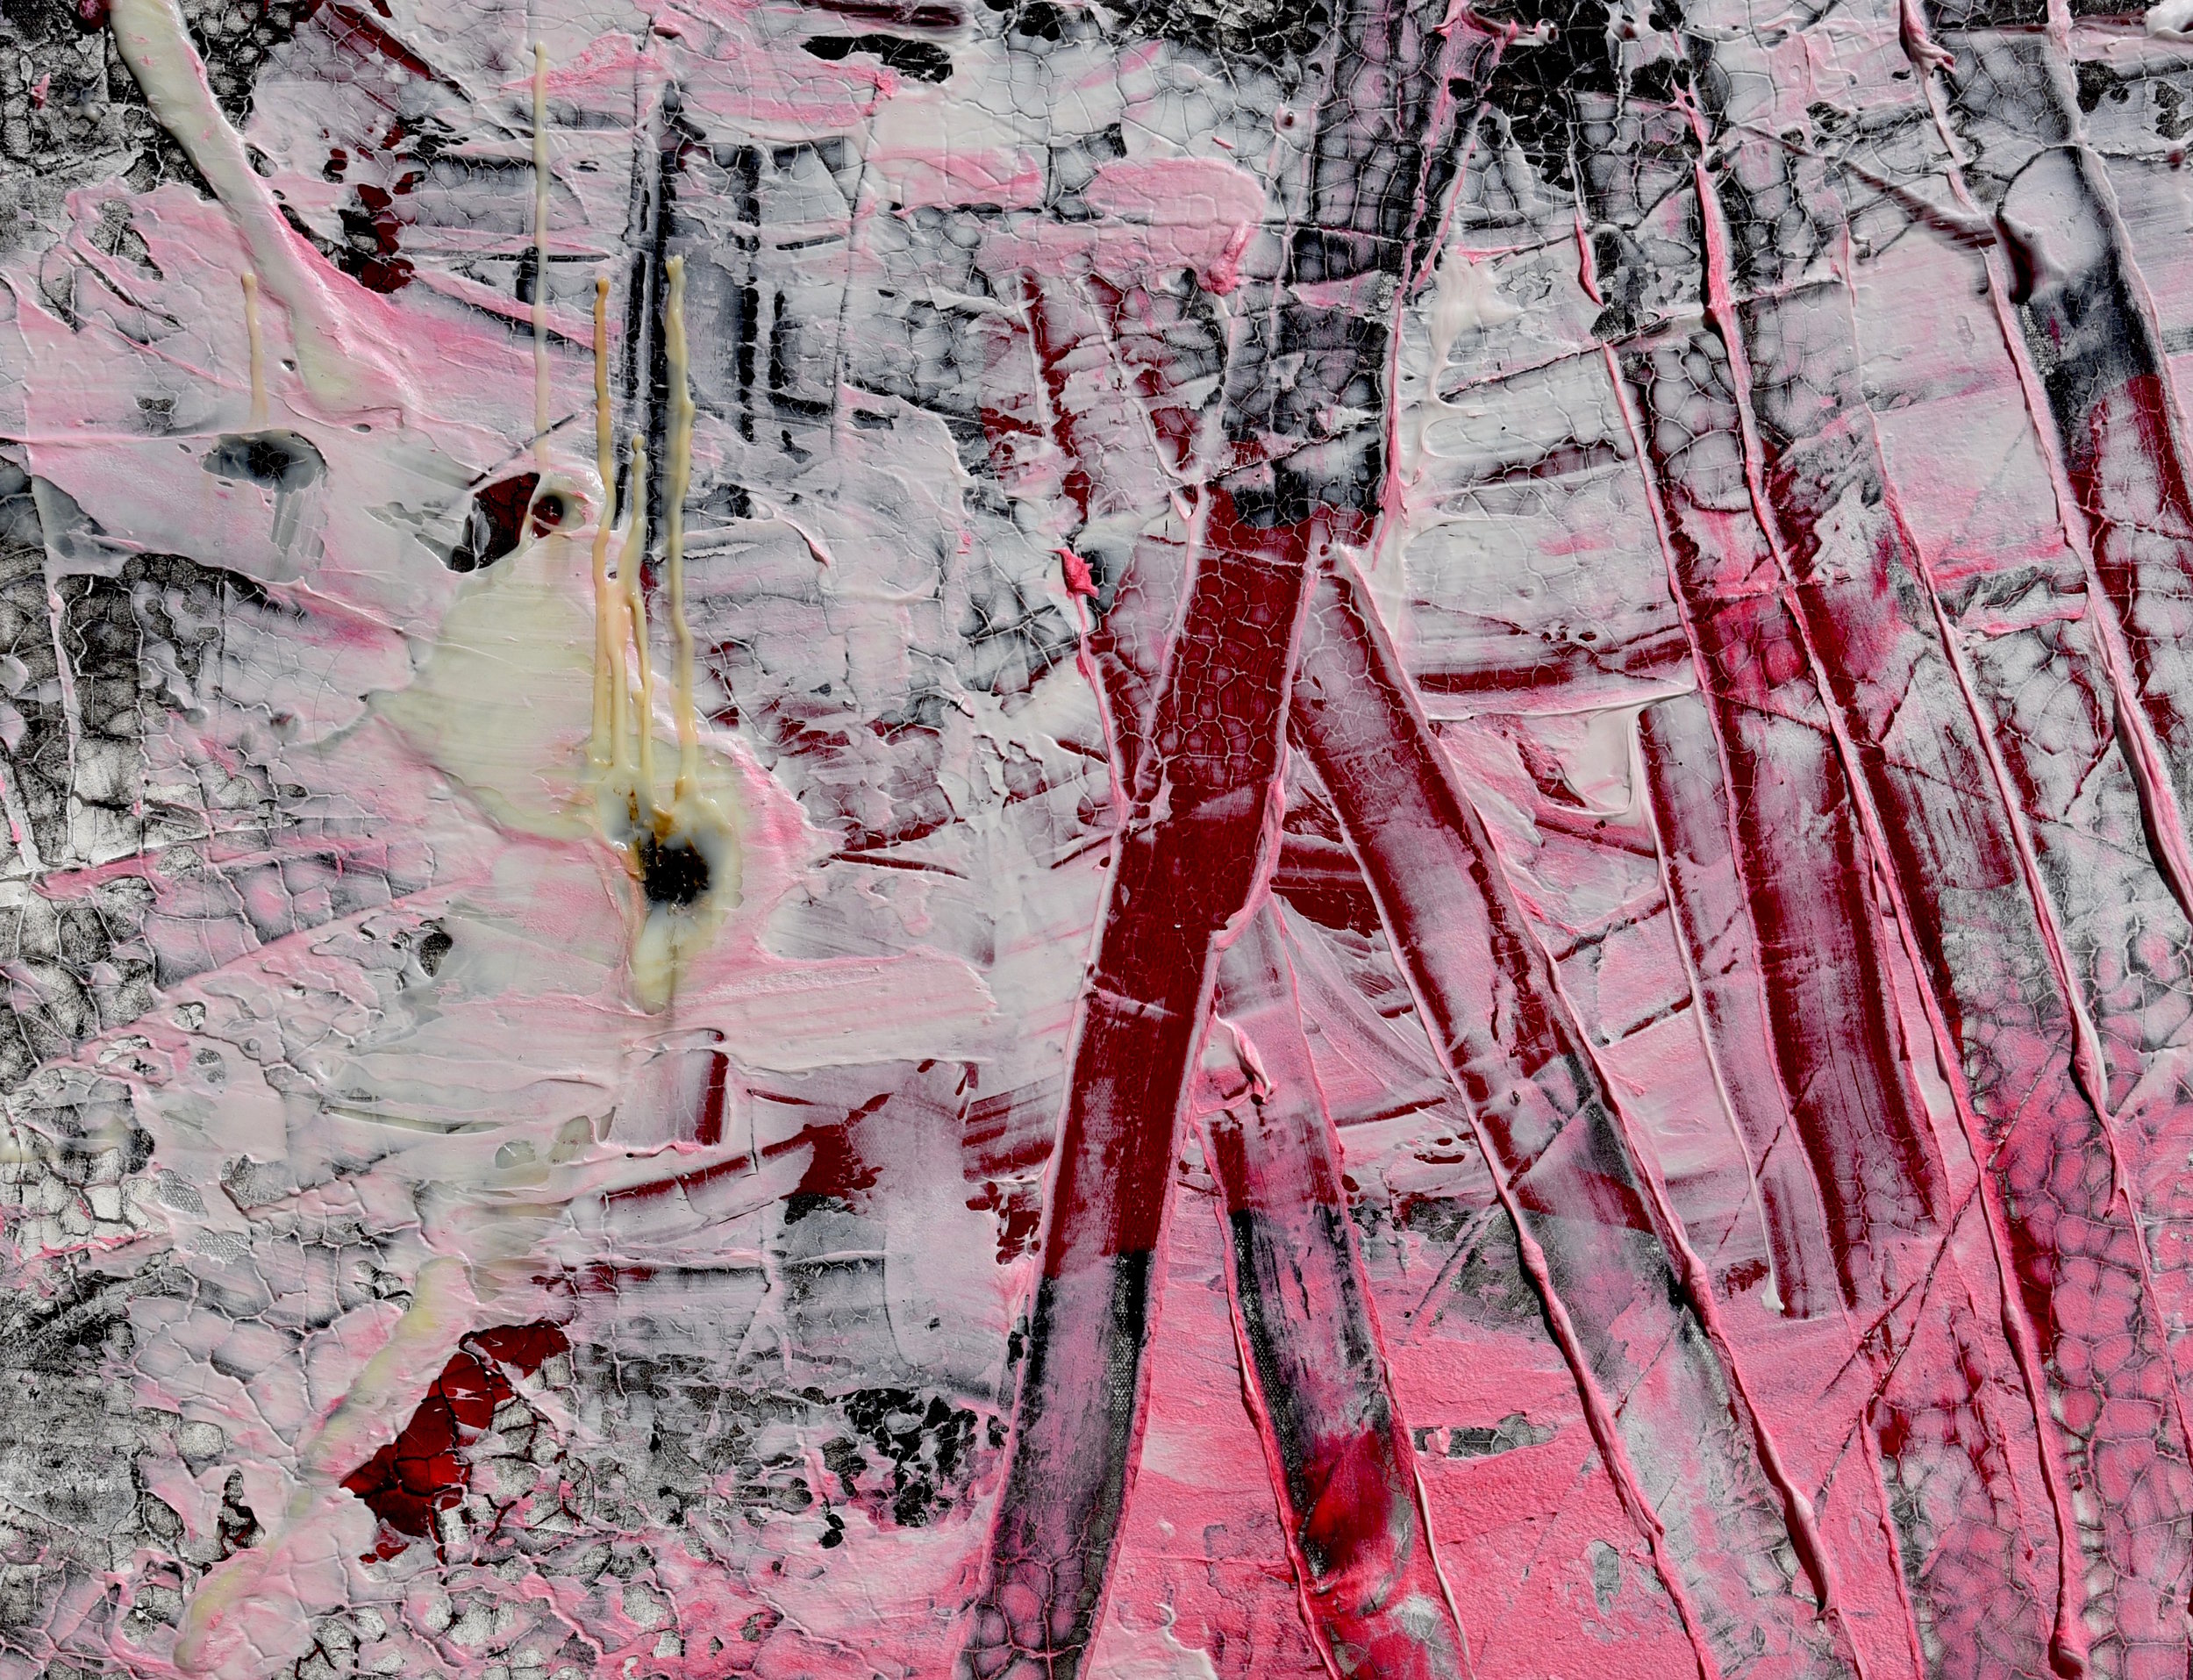 BETWEEN THE BARS    (SOLD) NEW YORK, NEW YORK   Mixed Media on canvas; ink, water color, spray paint, acrylic medium, blood.  24 X 30 Inches  APRIL 2017